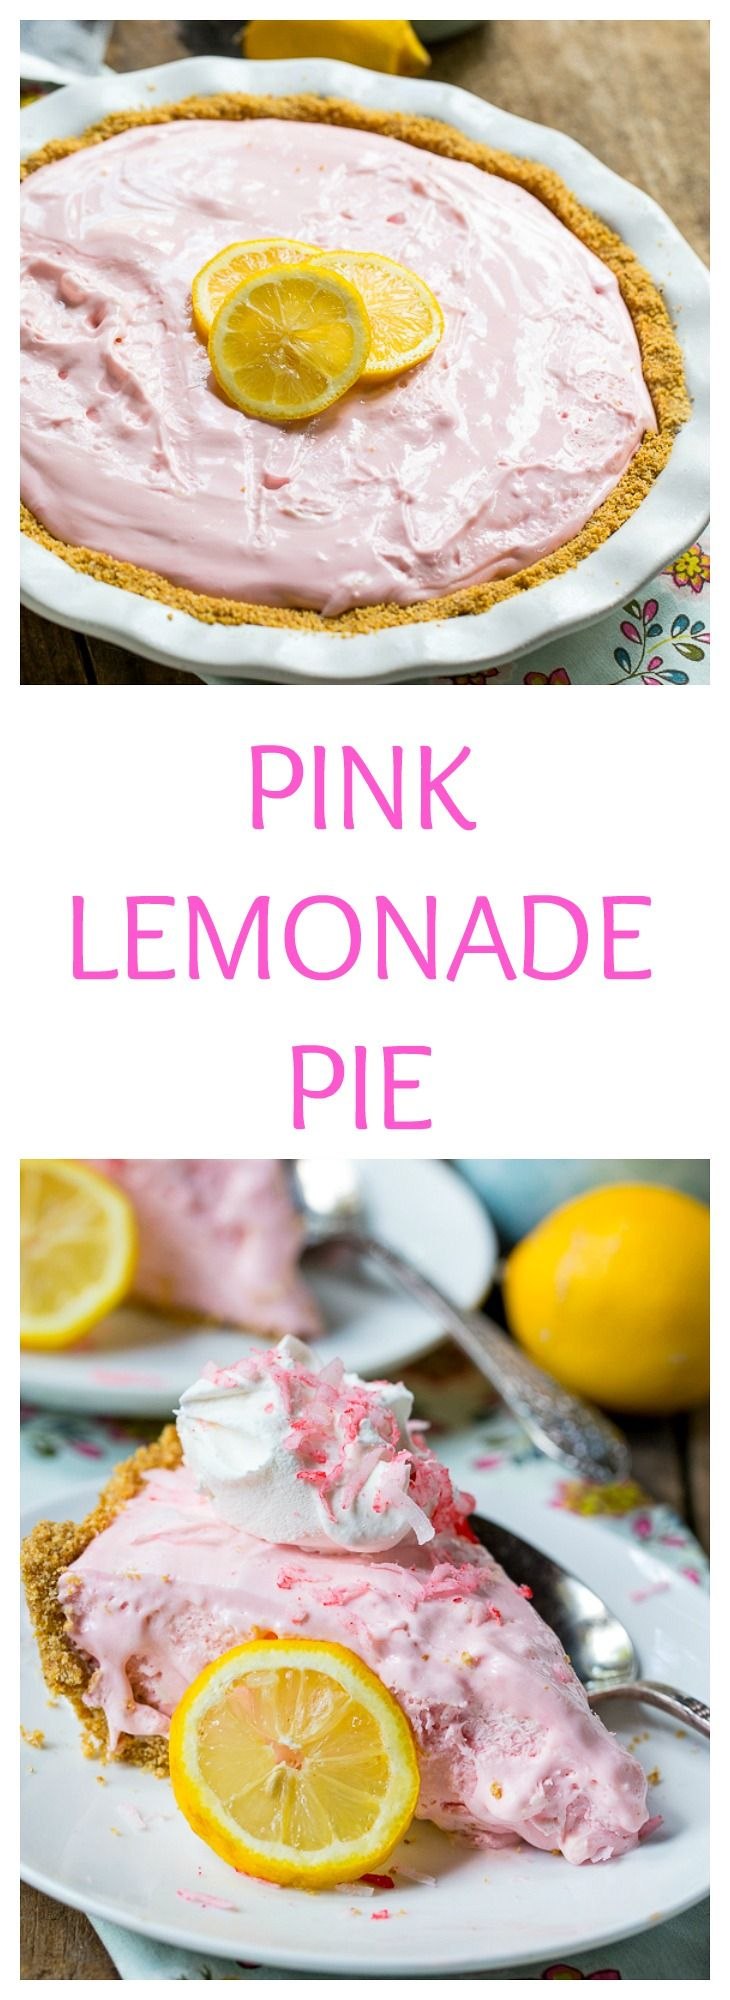 Pink Lemonade Pie - an easy no-bake pie that is the perfect summer treat!